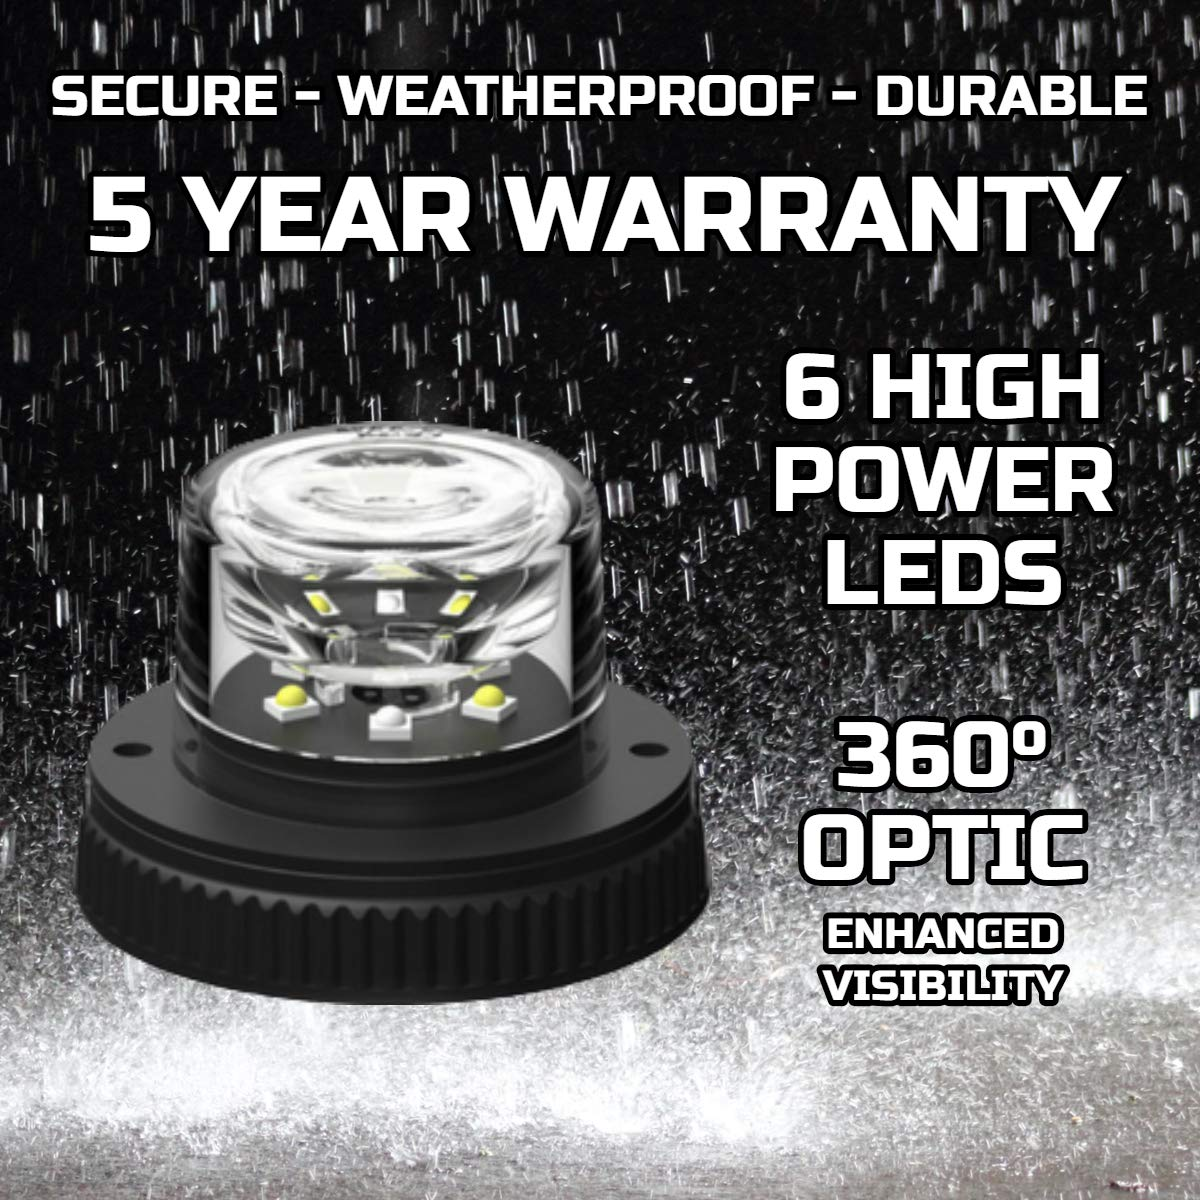 Clear//Clear SpeedTech Lights Flare 6 360/° LED Hideaway Strobe Lights//Surface Mount Flashing Warning Light Bulbs for Emergency Vehicles